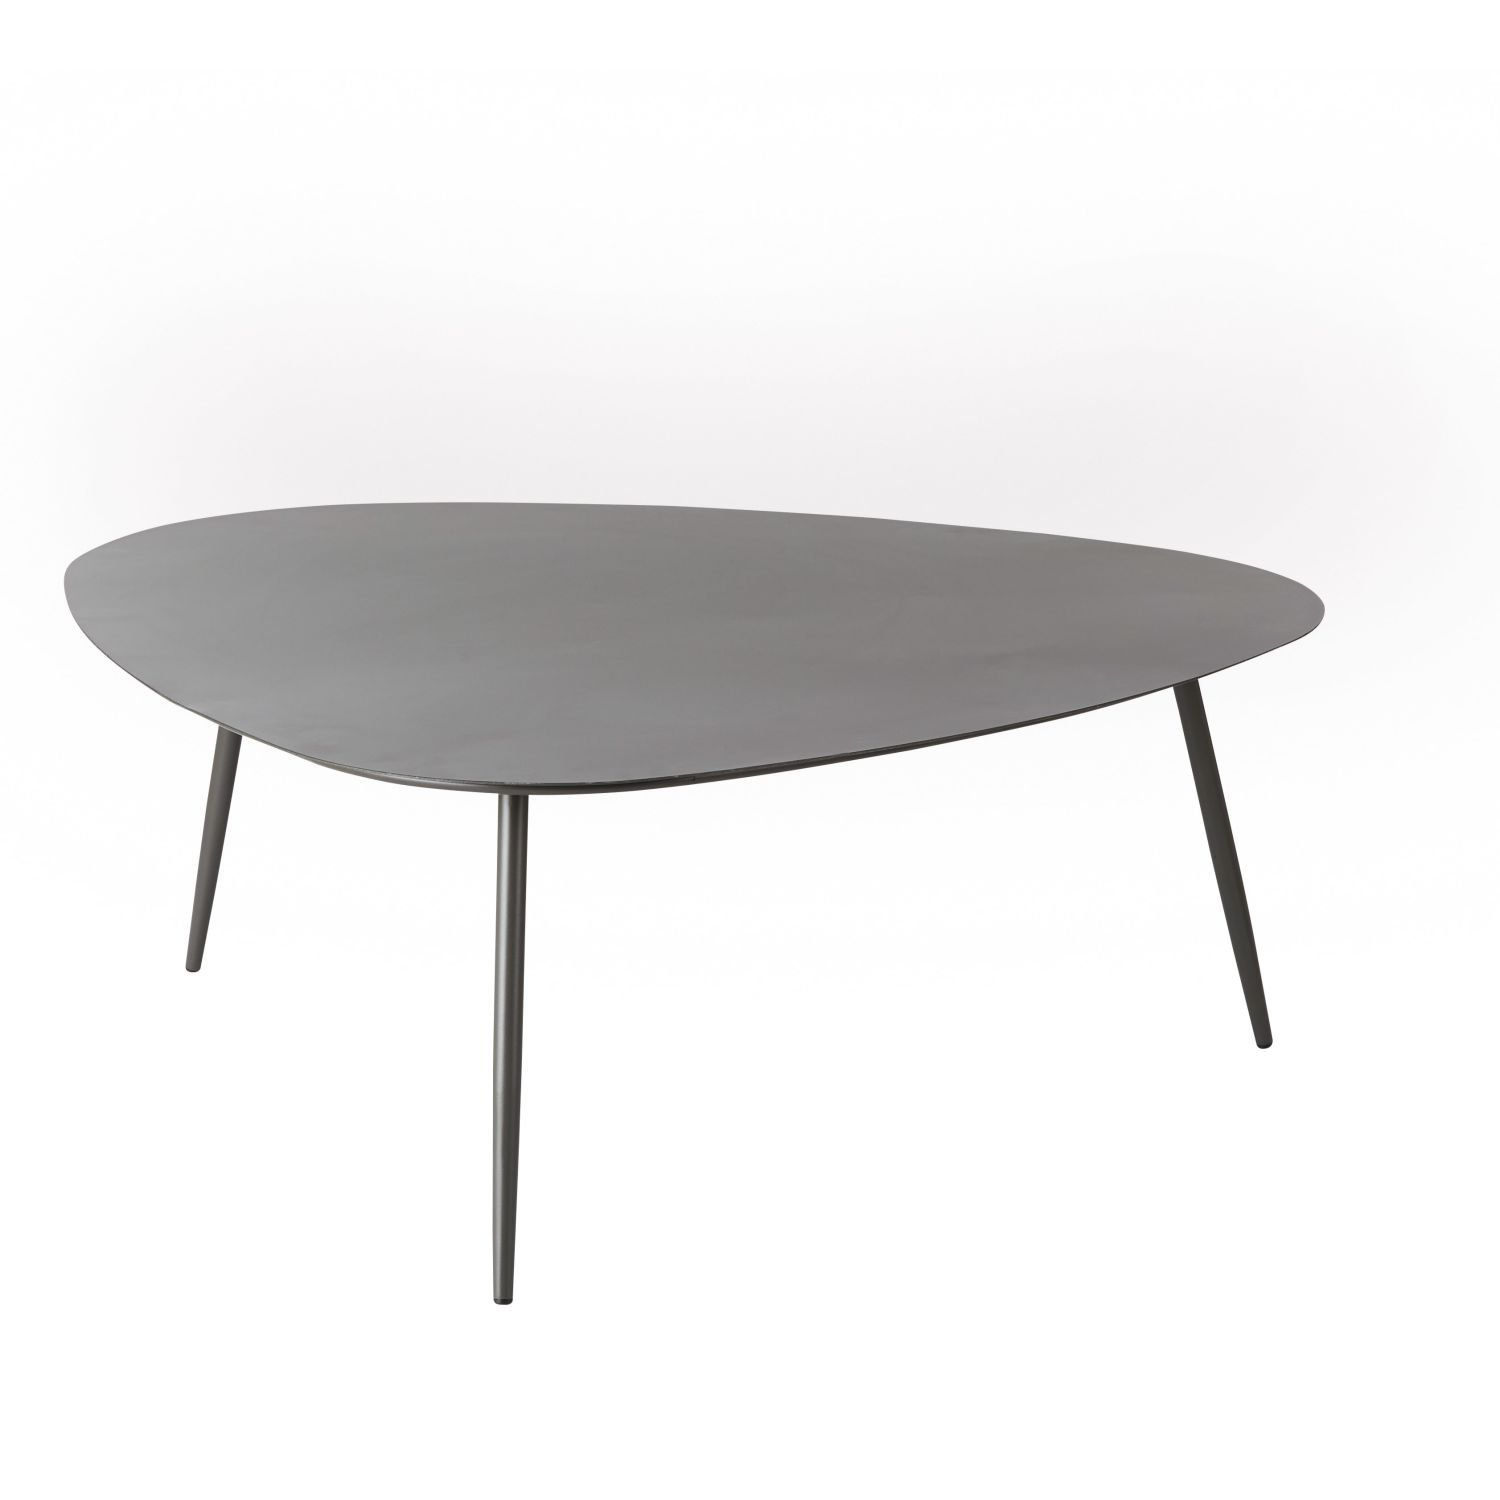 Table basse de jardin vintage en m tal gris anthracite maisons du monde - Table basse jardin metal ...